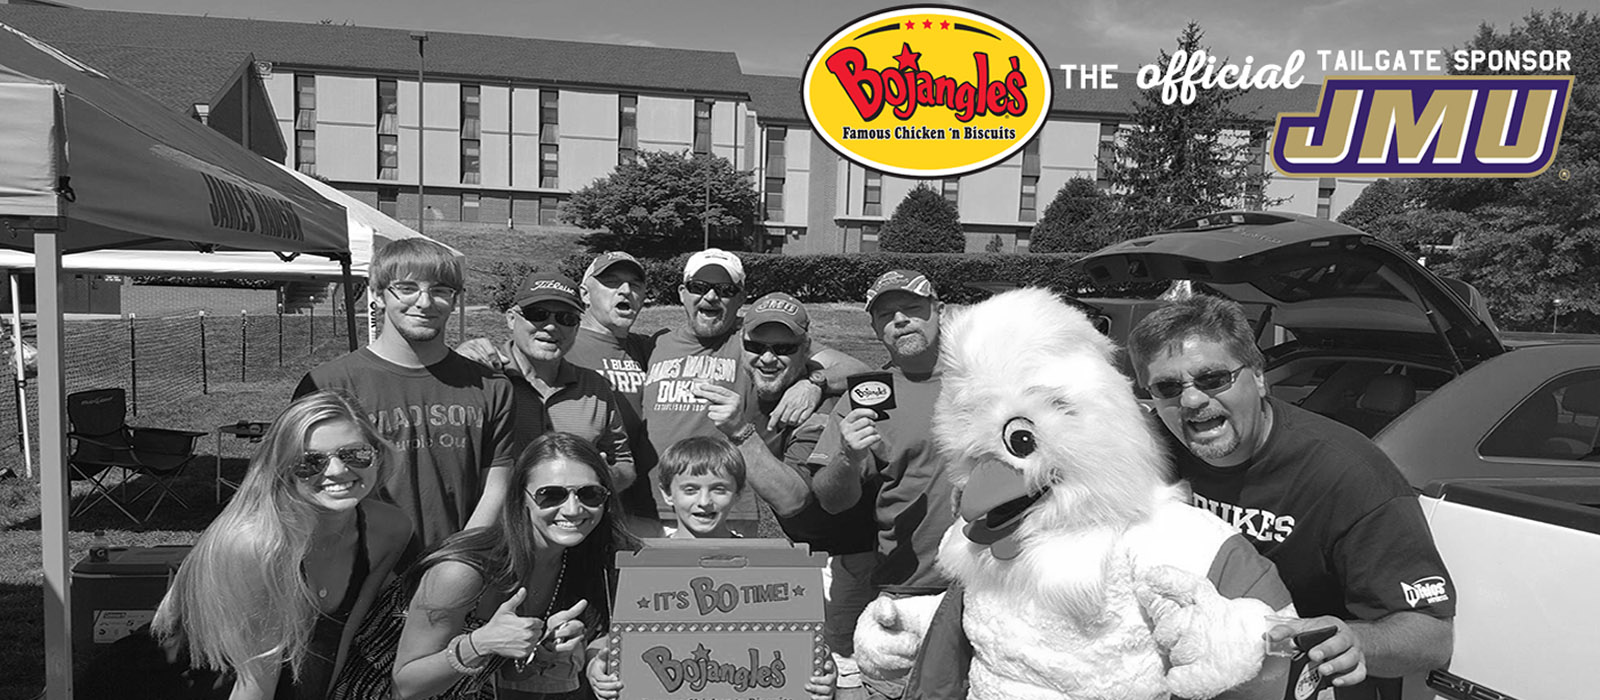 photo about Bojangles Printable Coupons titled Bojangles - Bojangles Coupon codes, Bojangles Menu, Bojangles